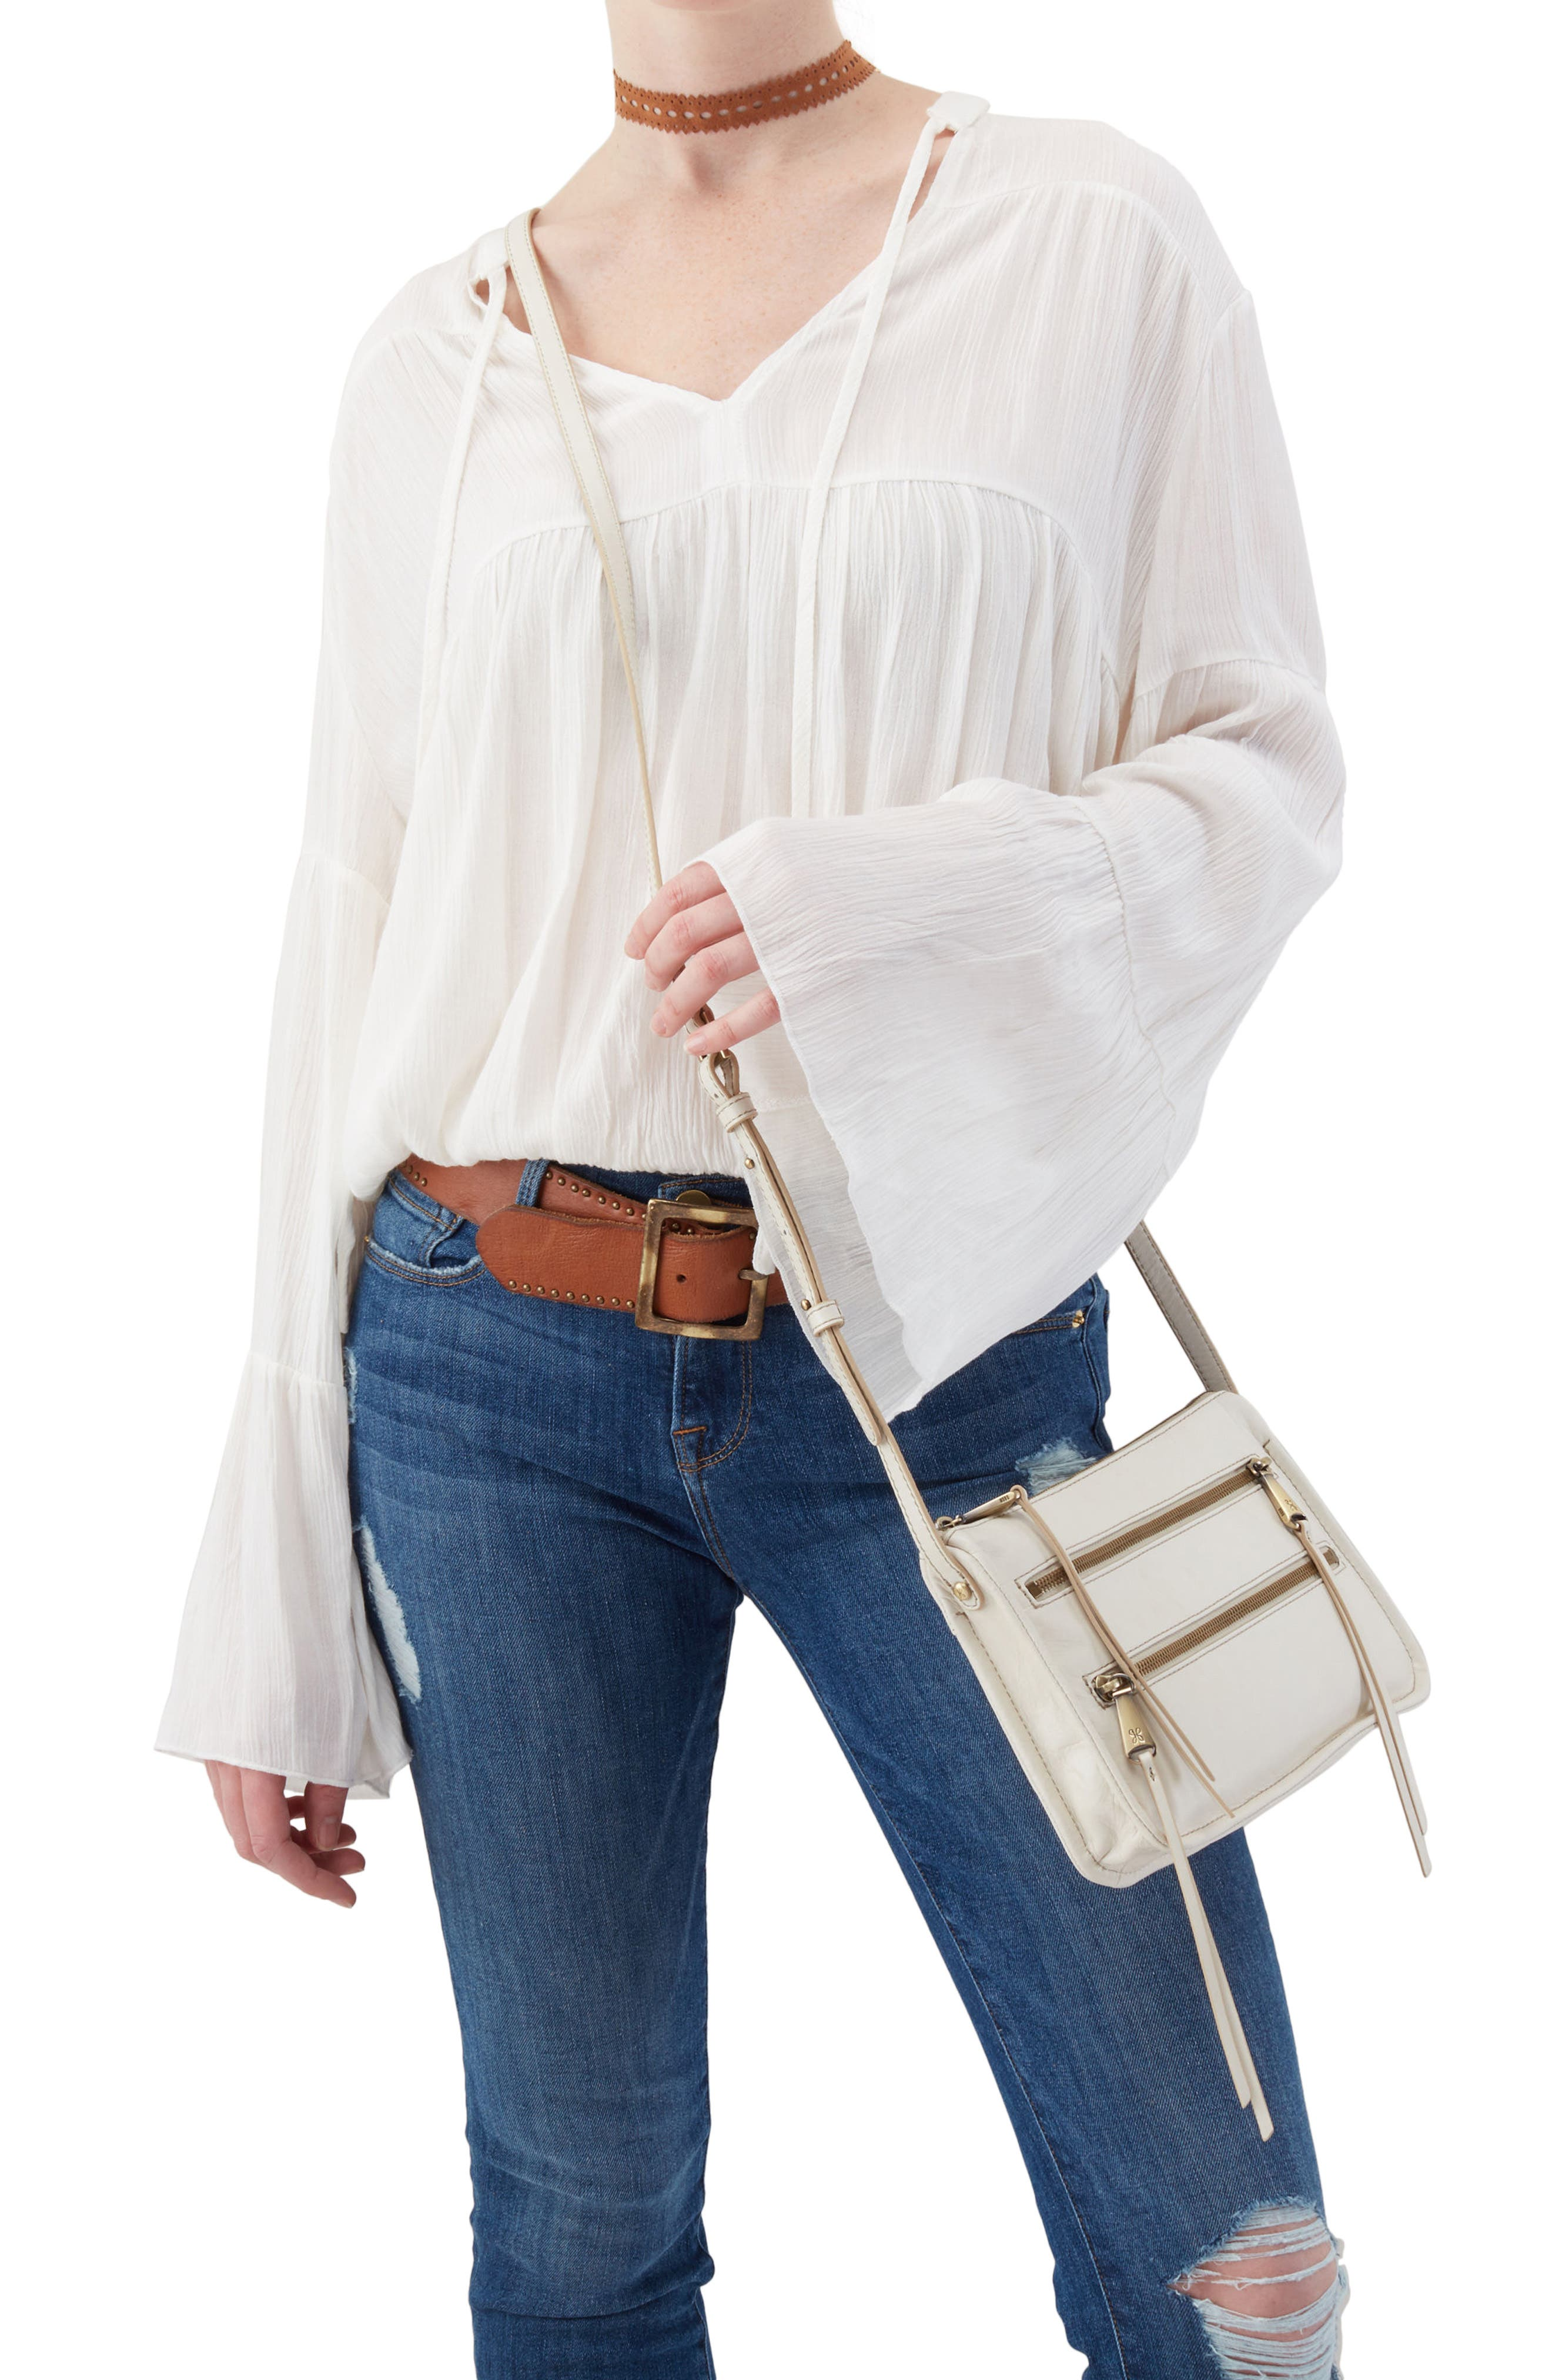 Mission Crossbody Bag,                             Alternate thumbnail 2, color,                             120